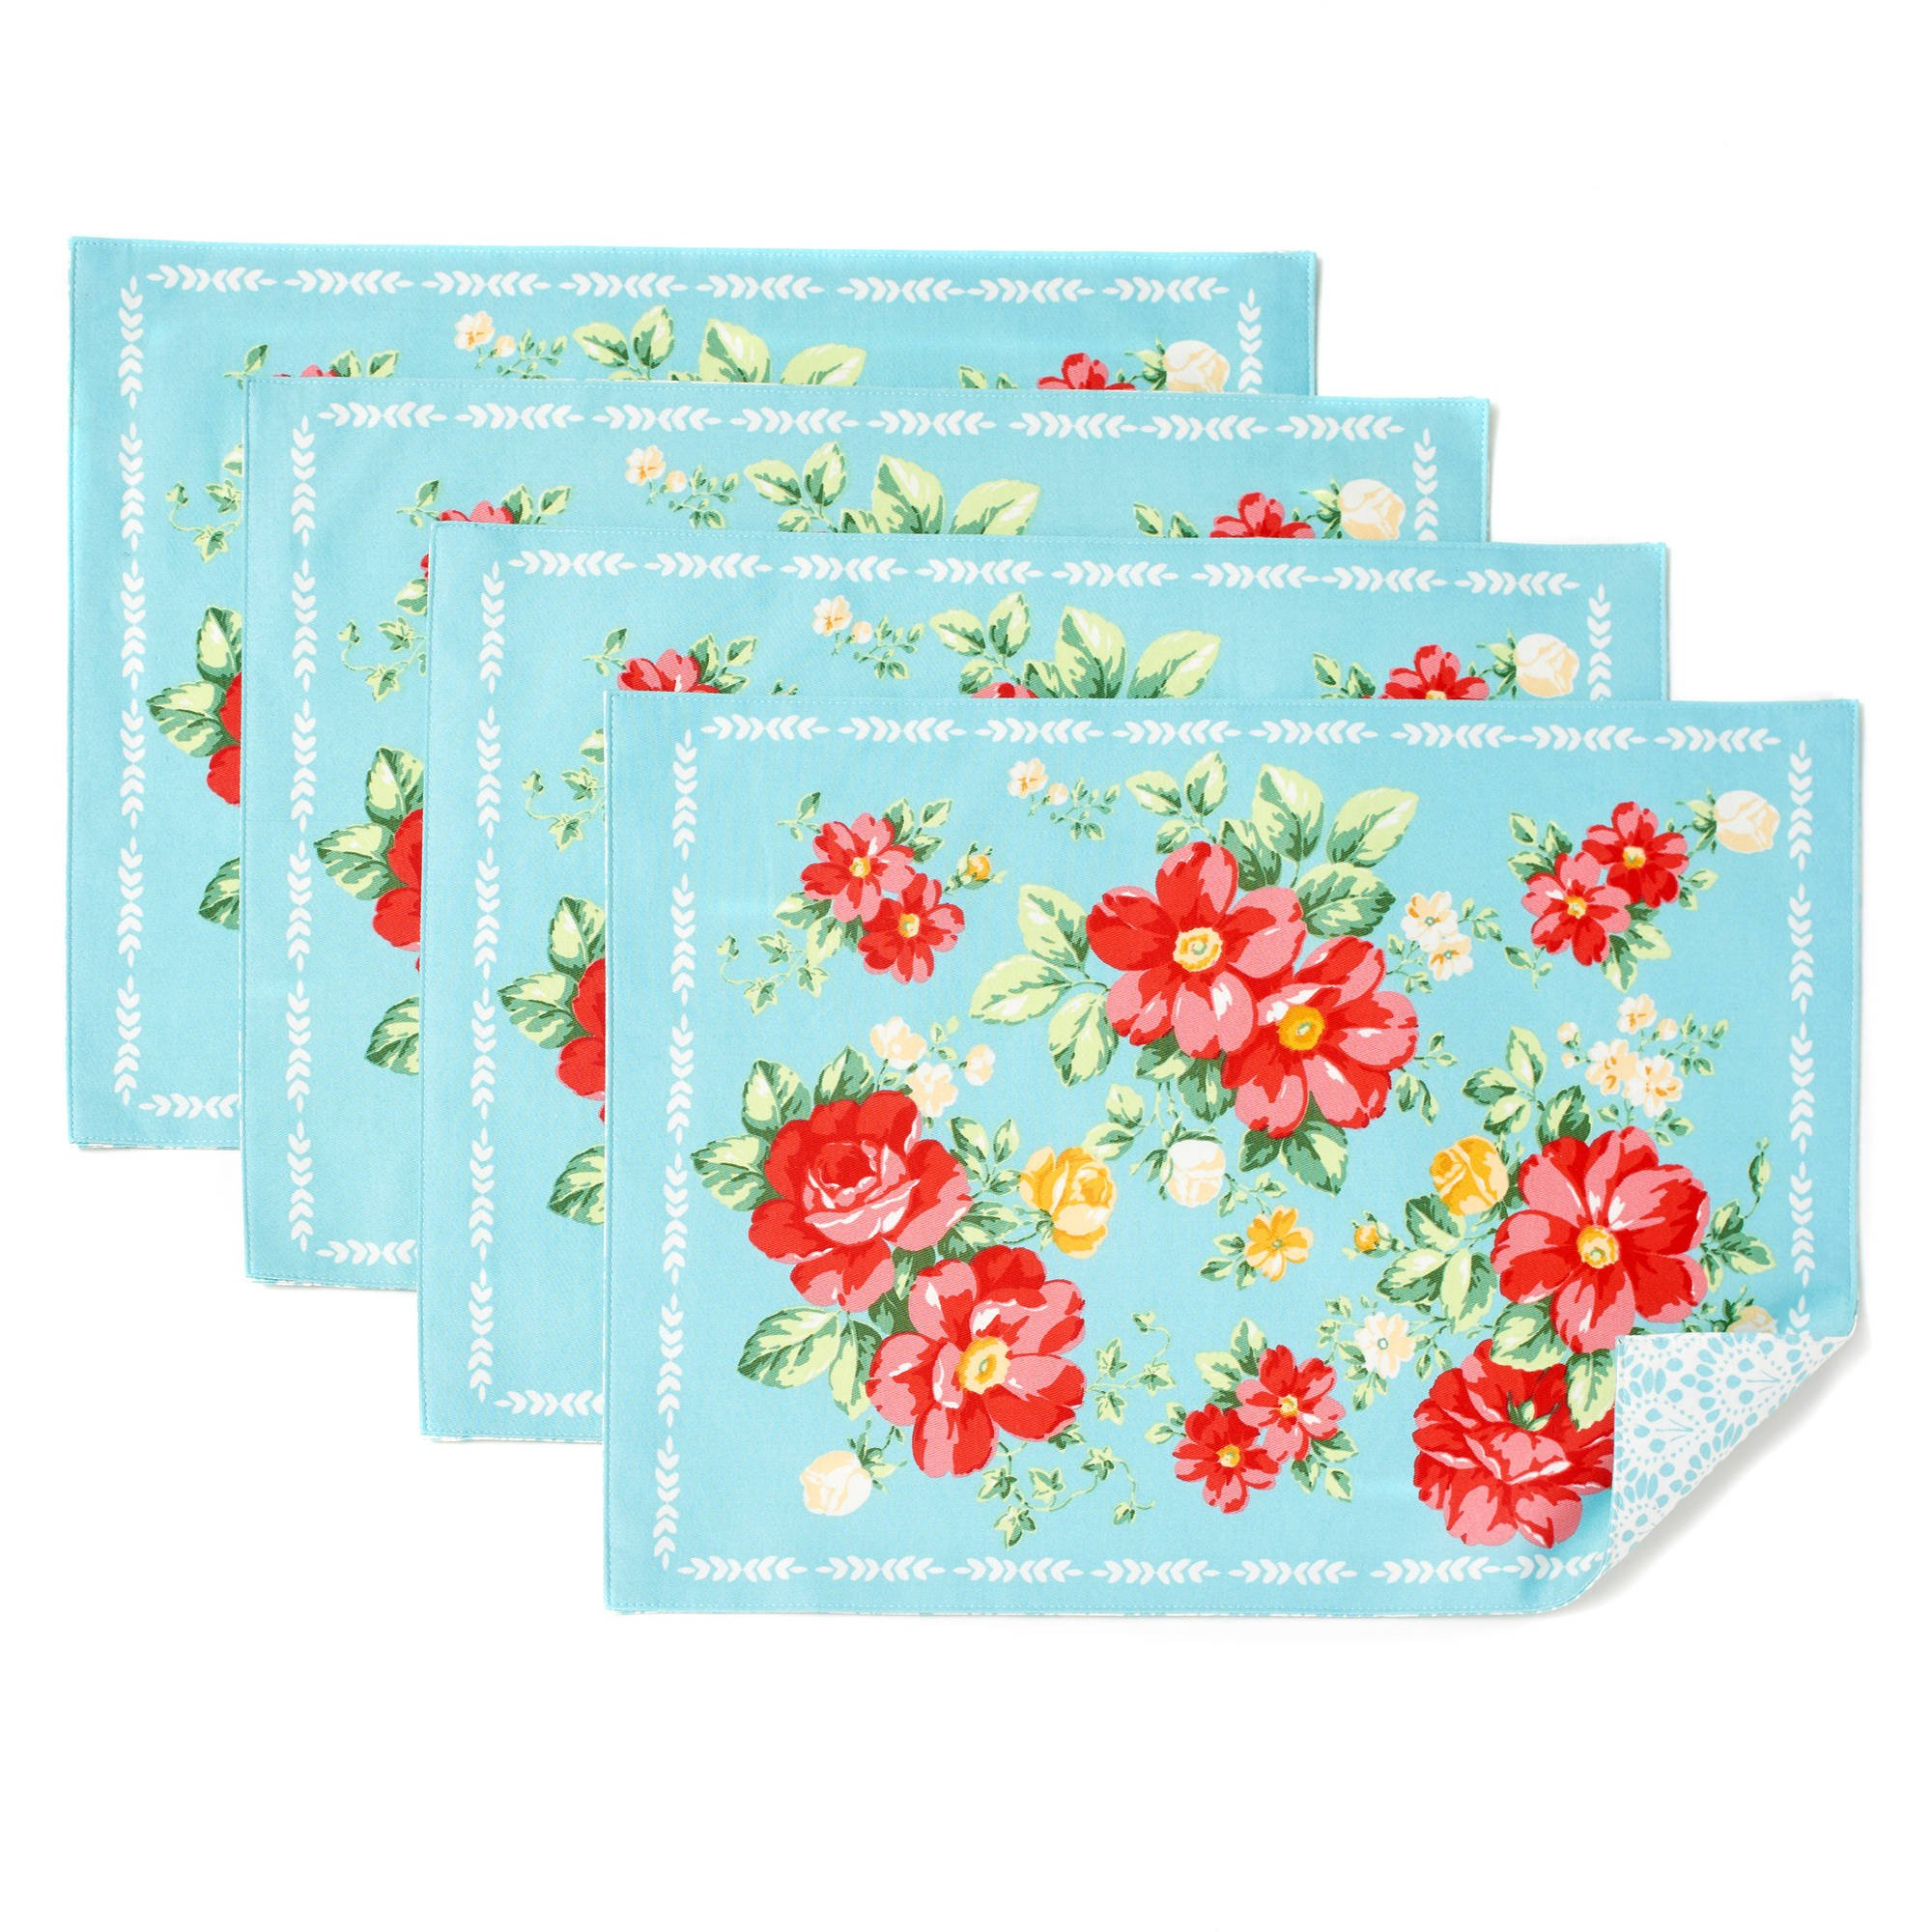 The Pioneer Woman Vintage Floral Design Placemat Set of 4, Reversible by Pioneer Woman (Image #1)